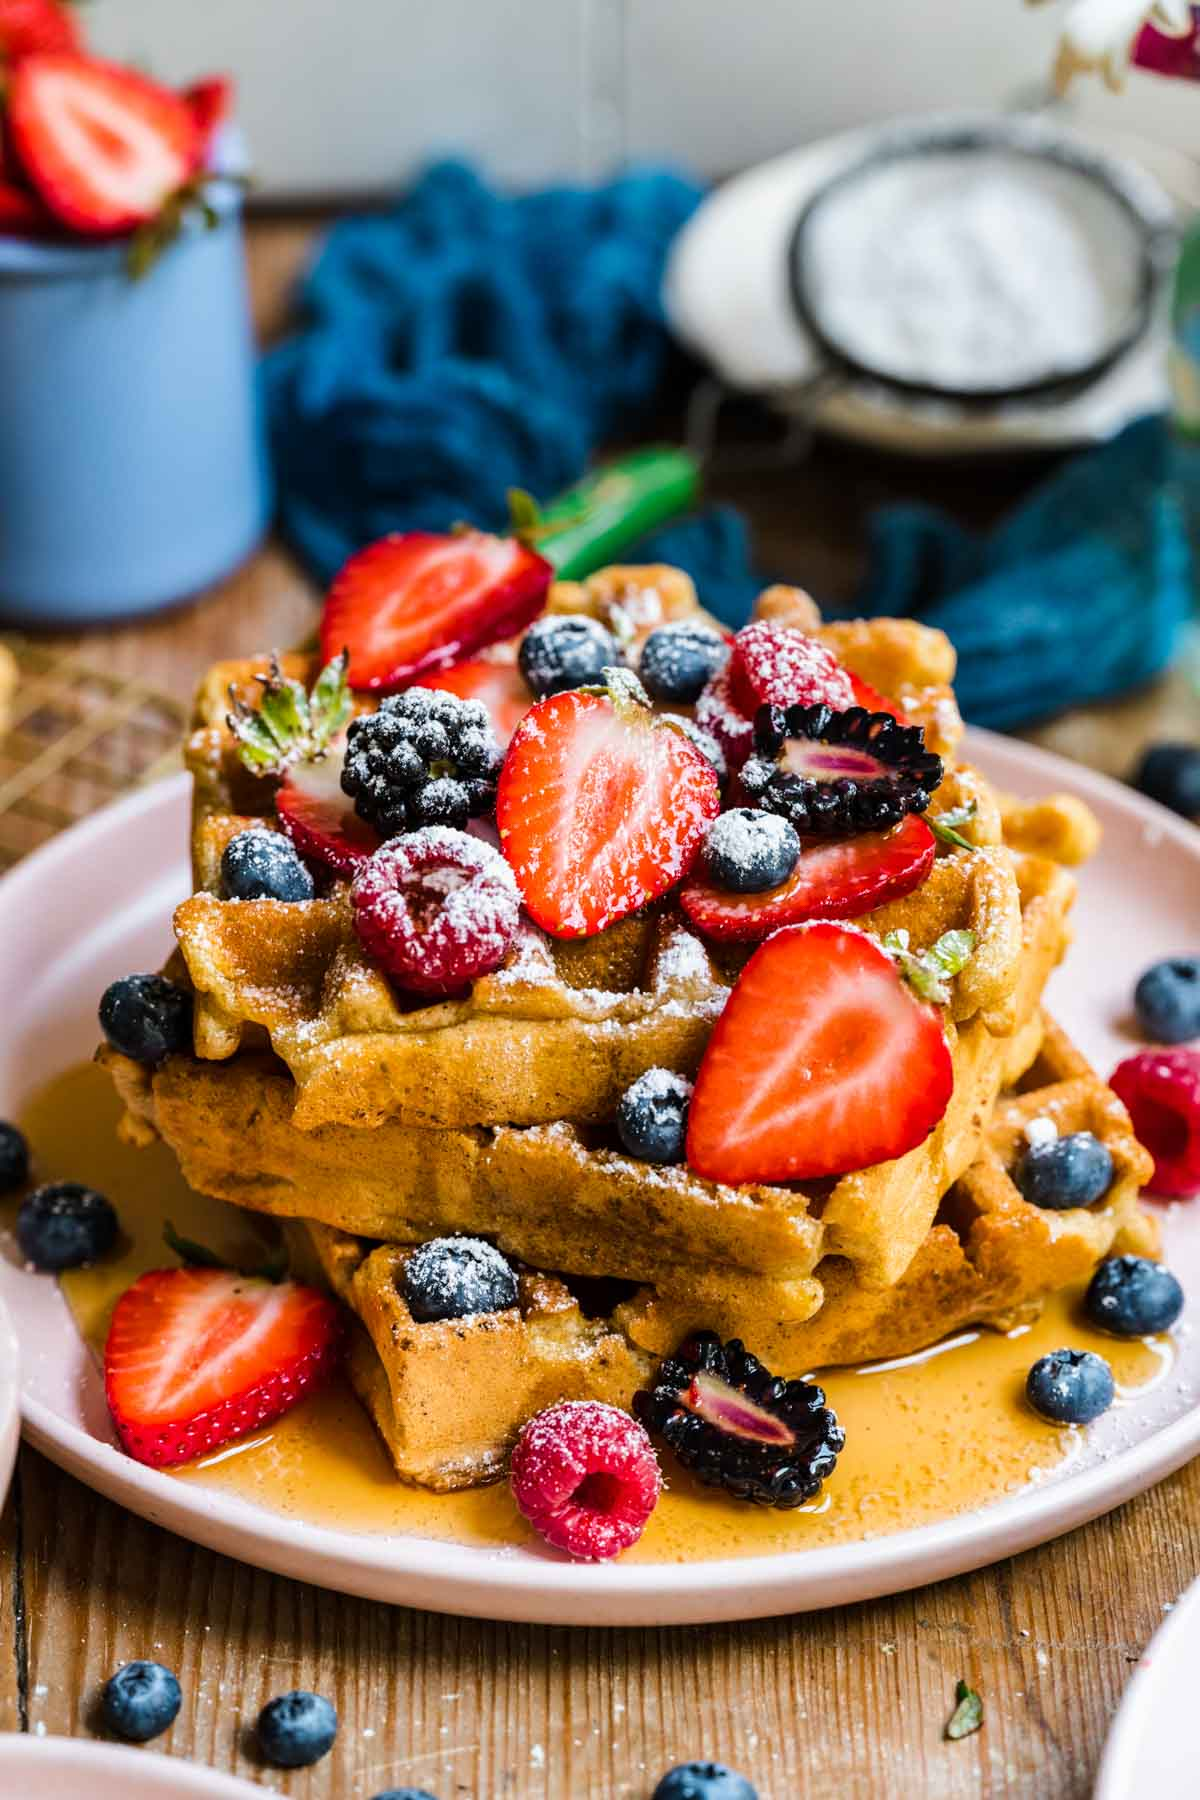 side view of a stack of vegan and gluten free waffles topped with berries, maple syrup and powdered sugar.